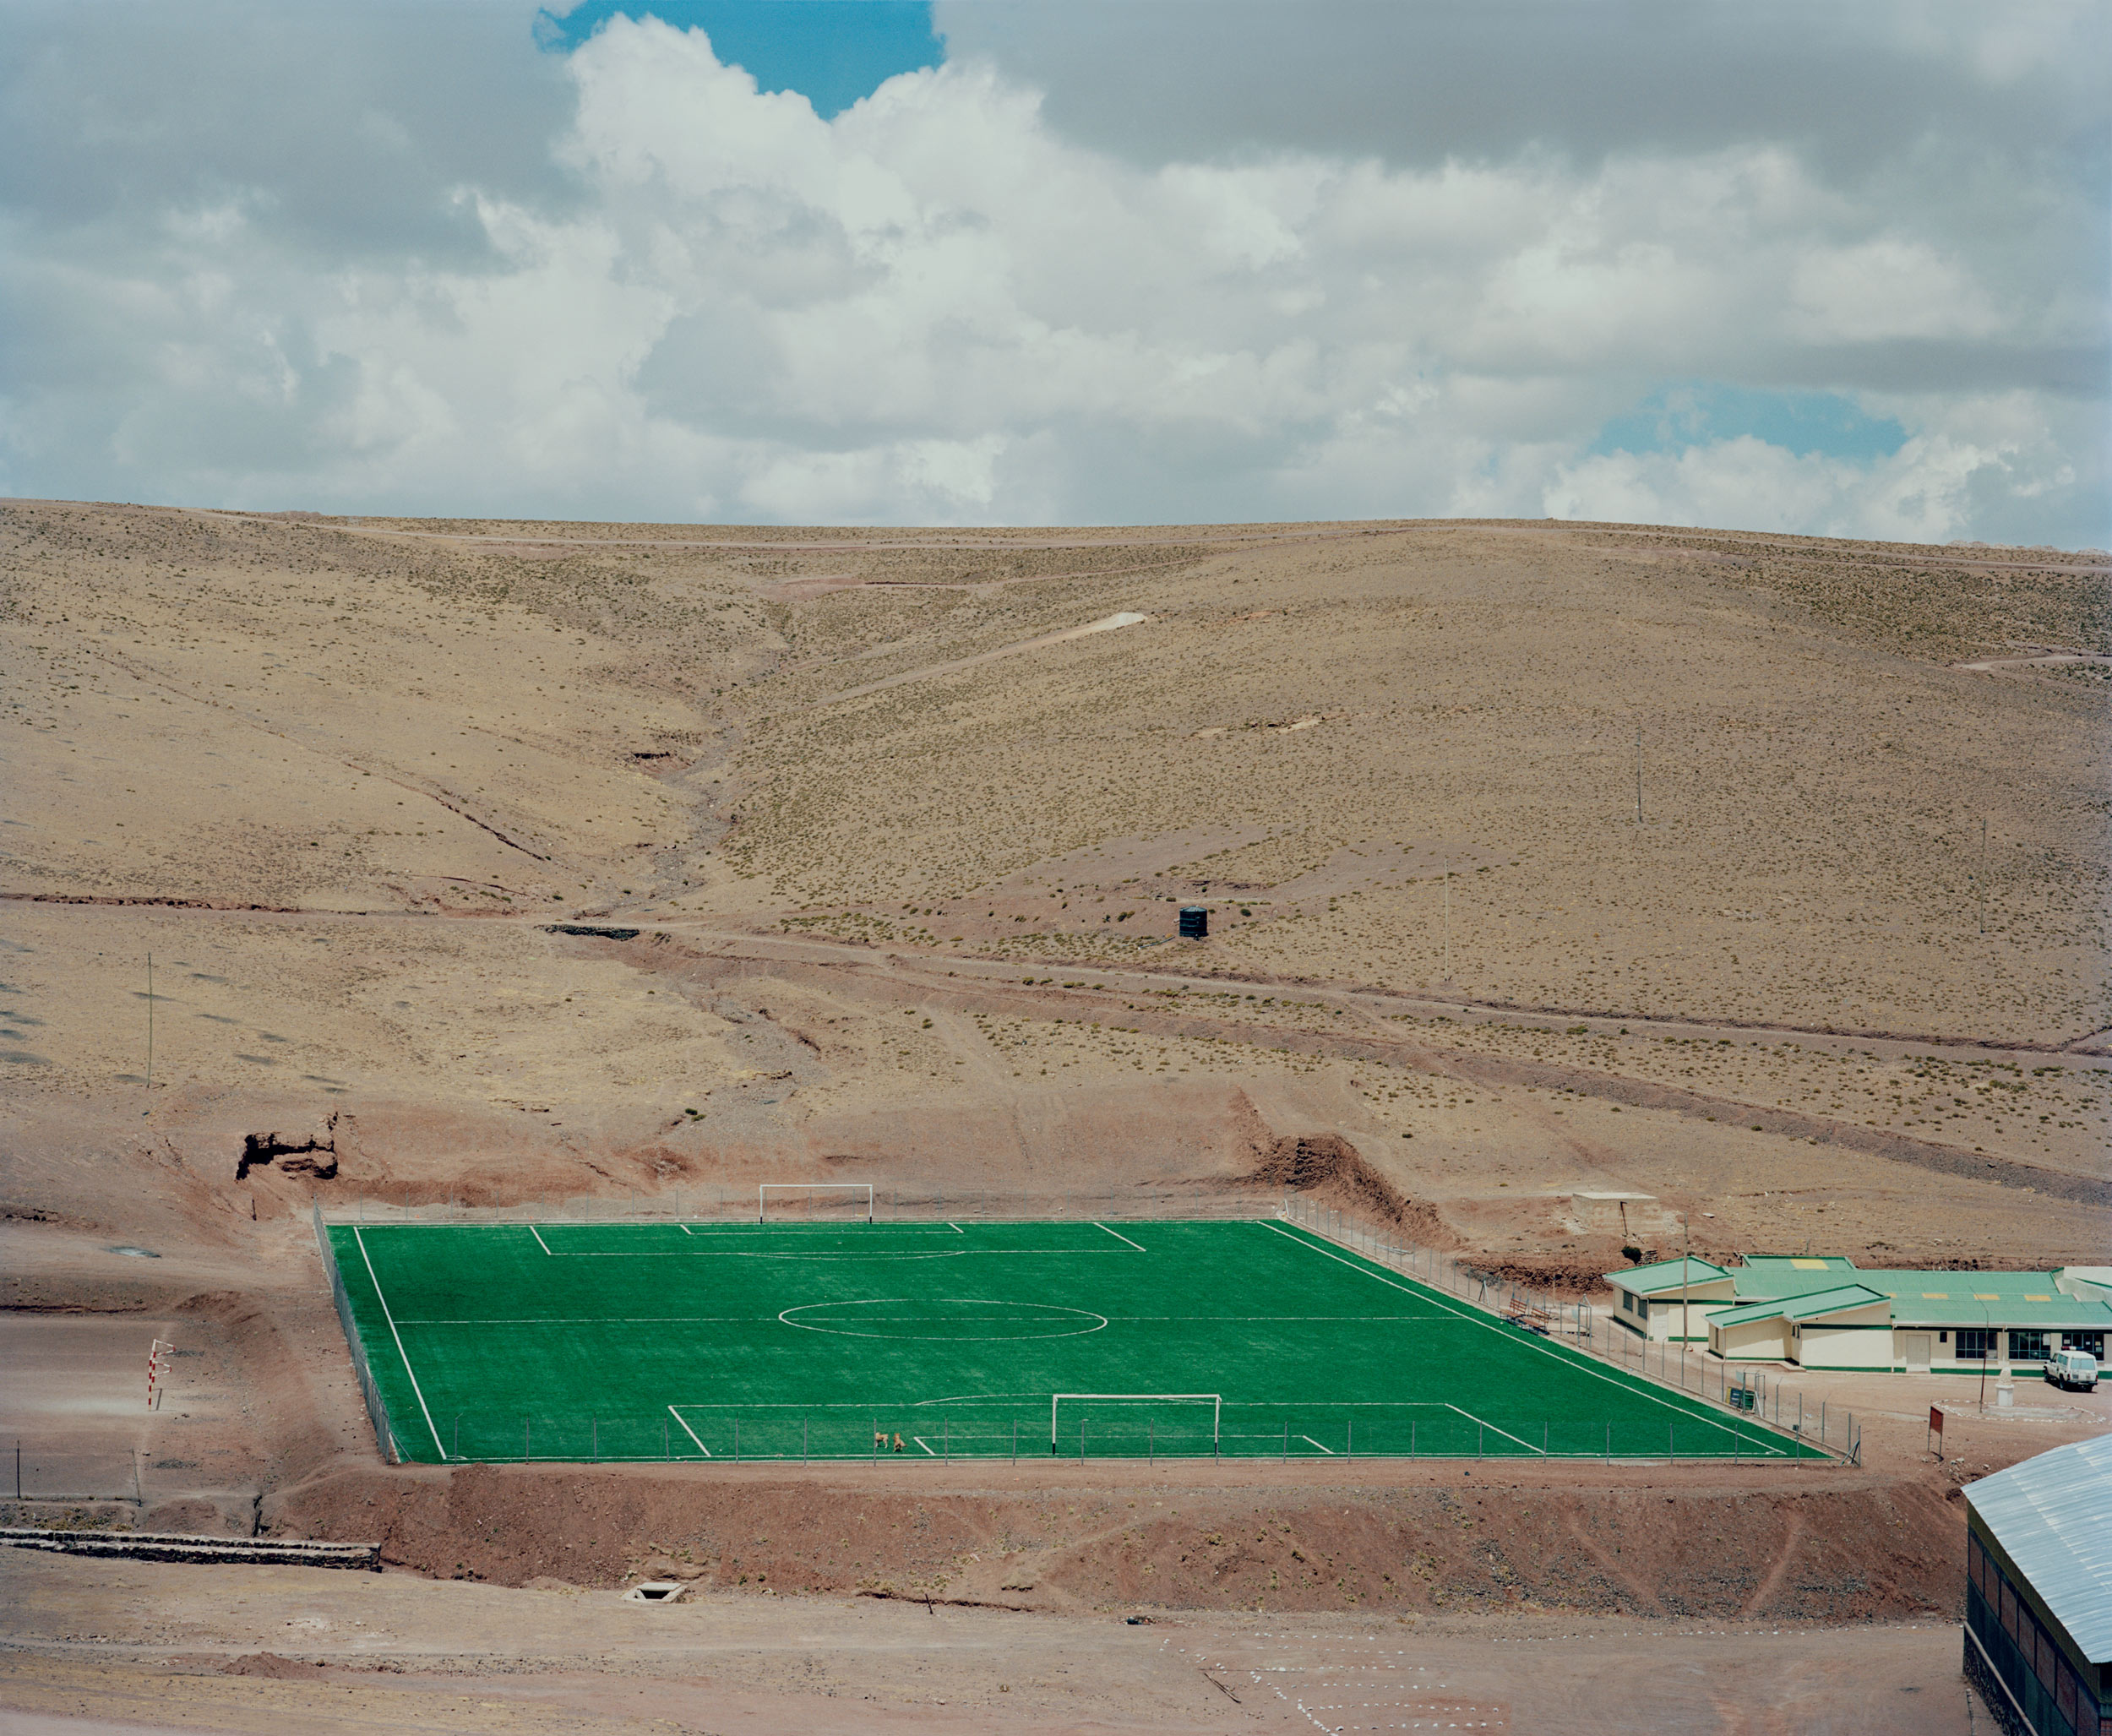 Artificial football field built by Pan American silver mining company for its staff that work at the remote San Vincente.